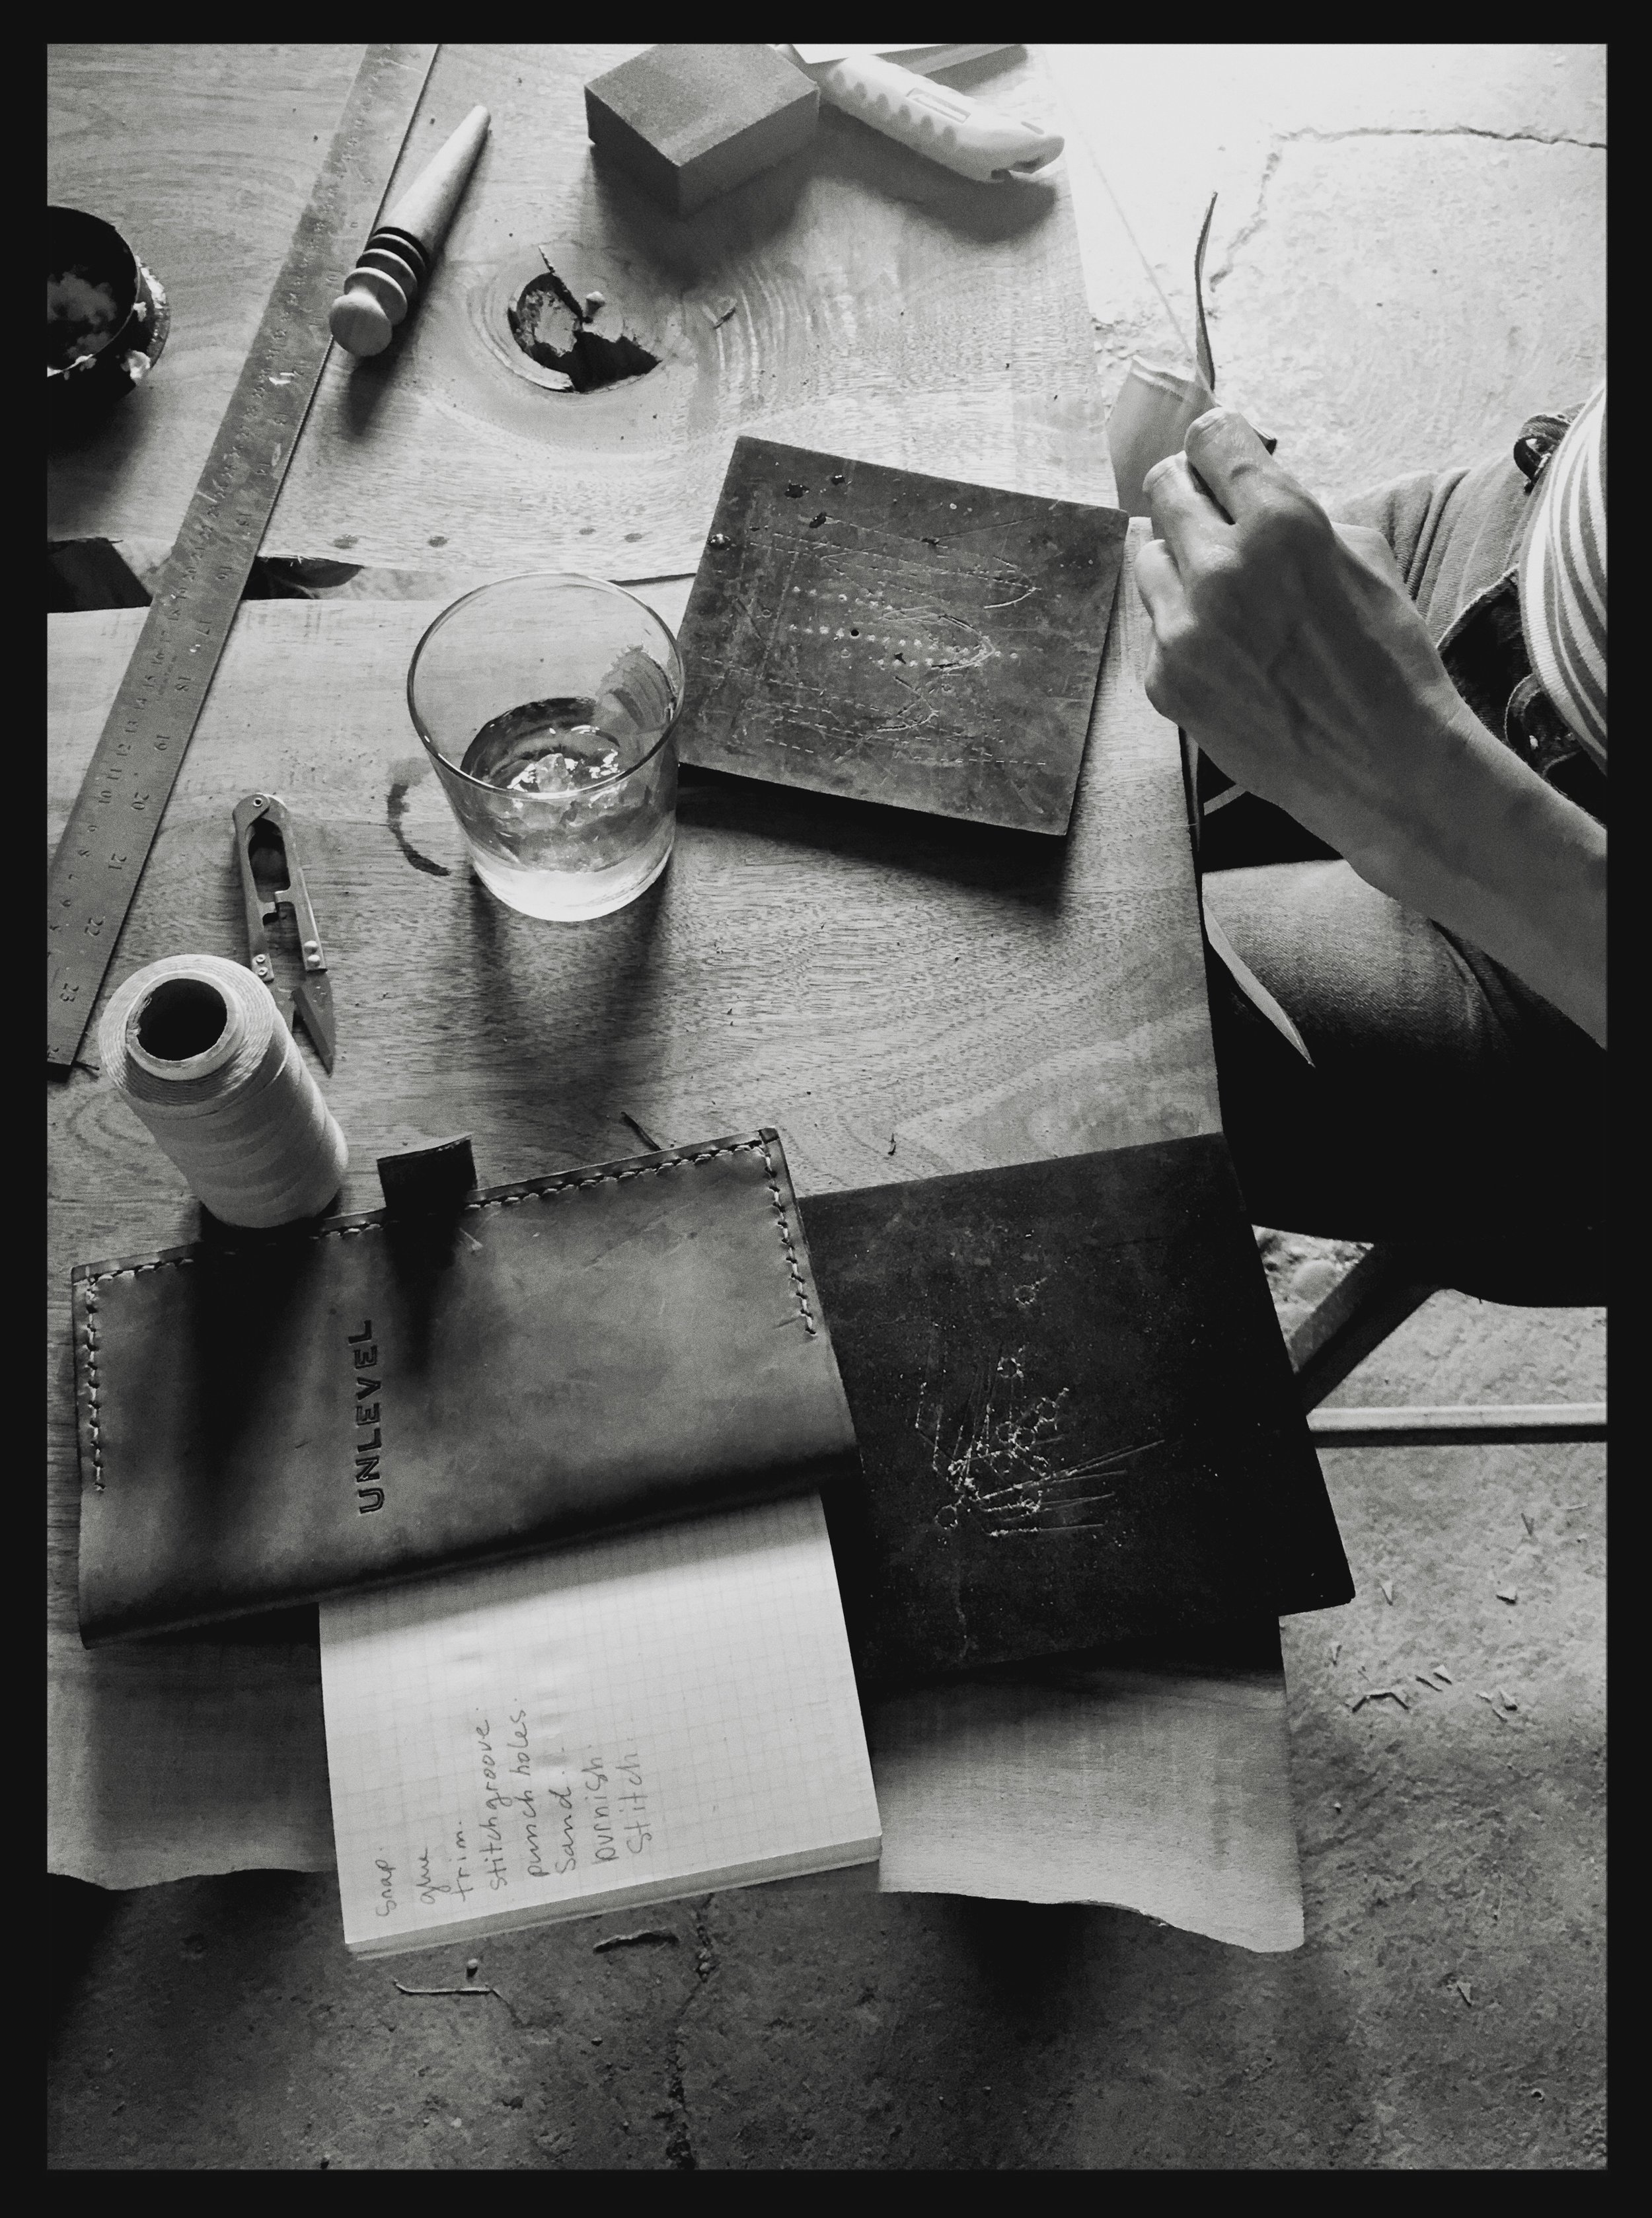 Fish & Bicycle Hand Leather Smithing - photo Juliette Hermant -6